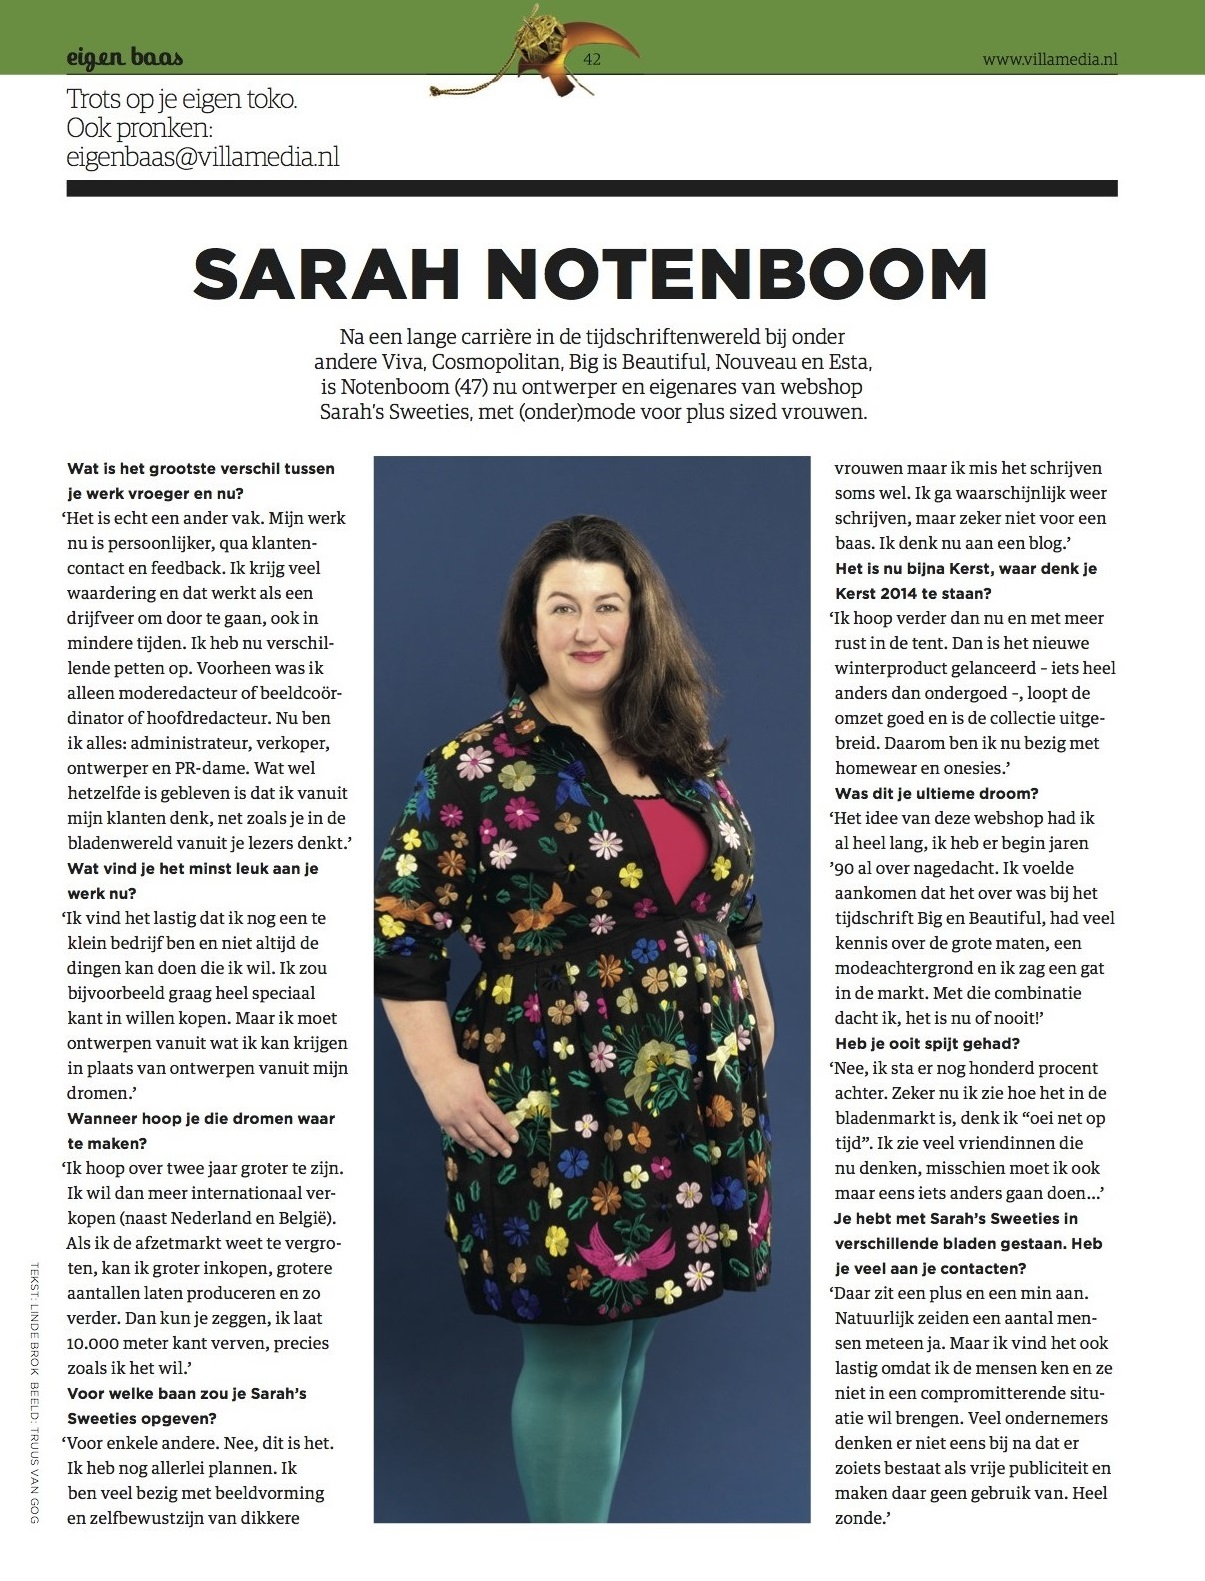 Interview Sarah Notenboom Villamedia december 2013